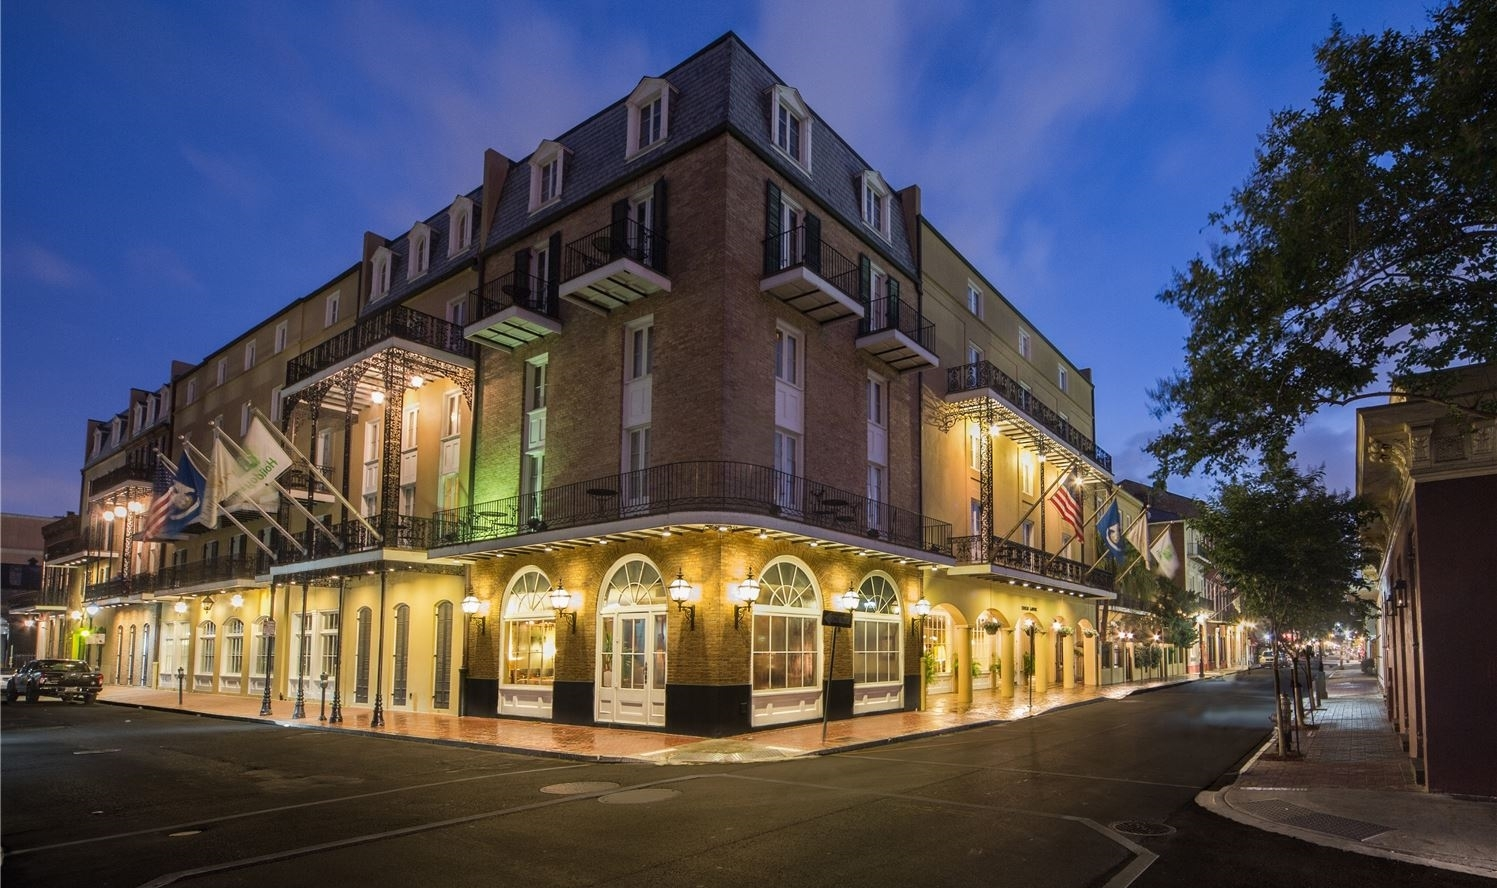 Chateau LeMoyne - French Quarter, A Holiday Inn Hotel